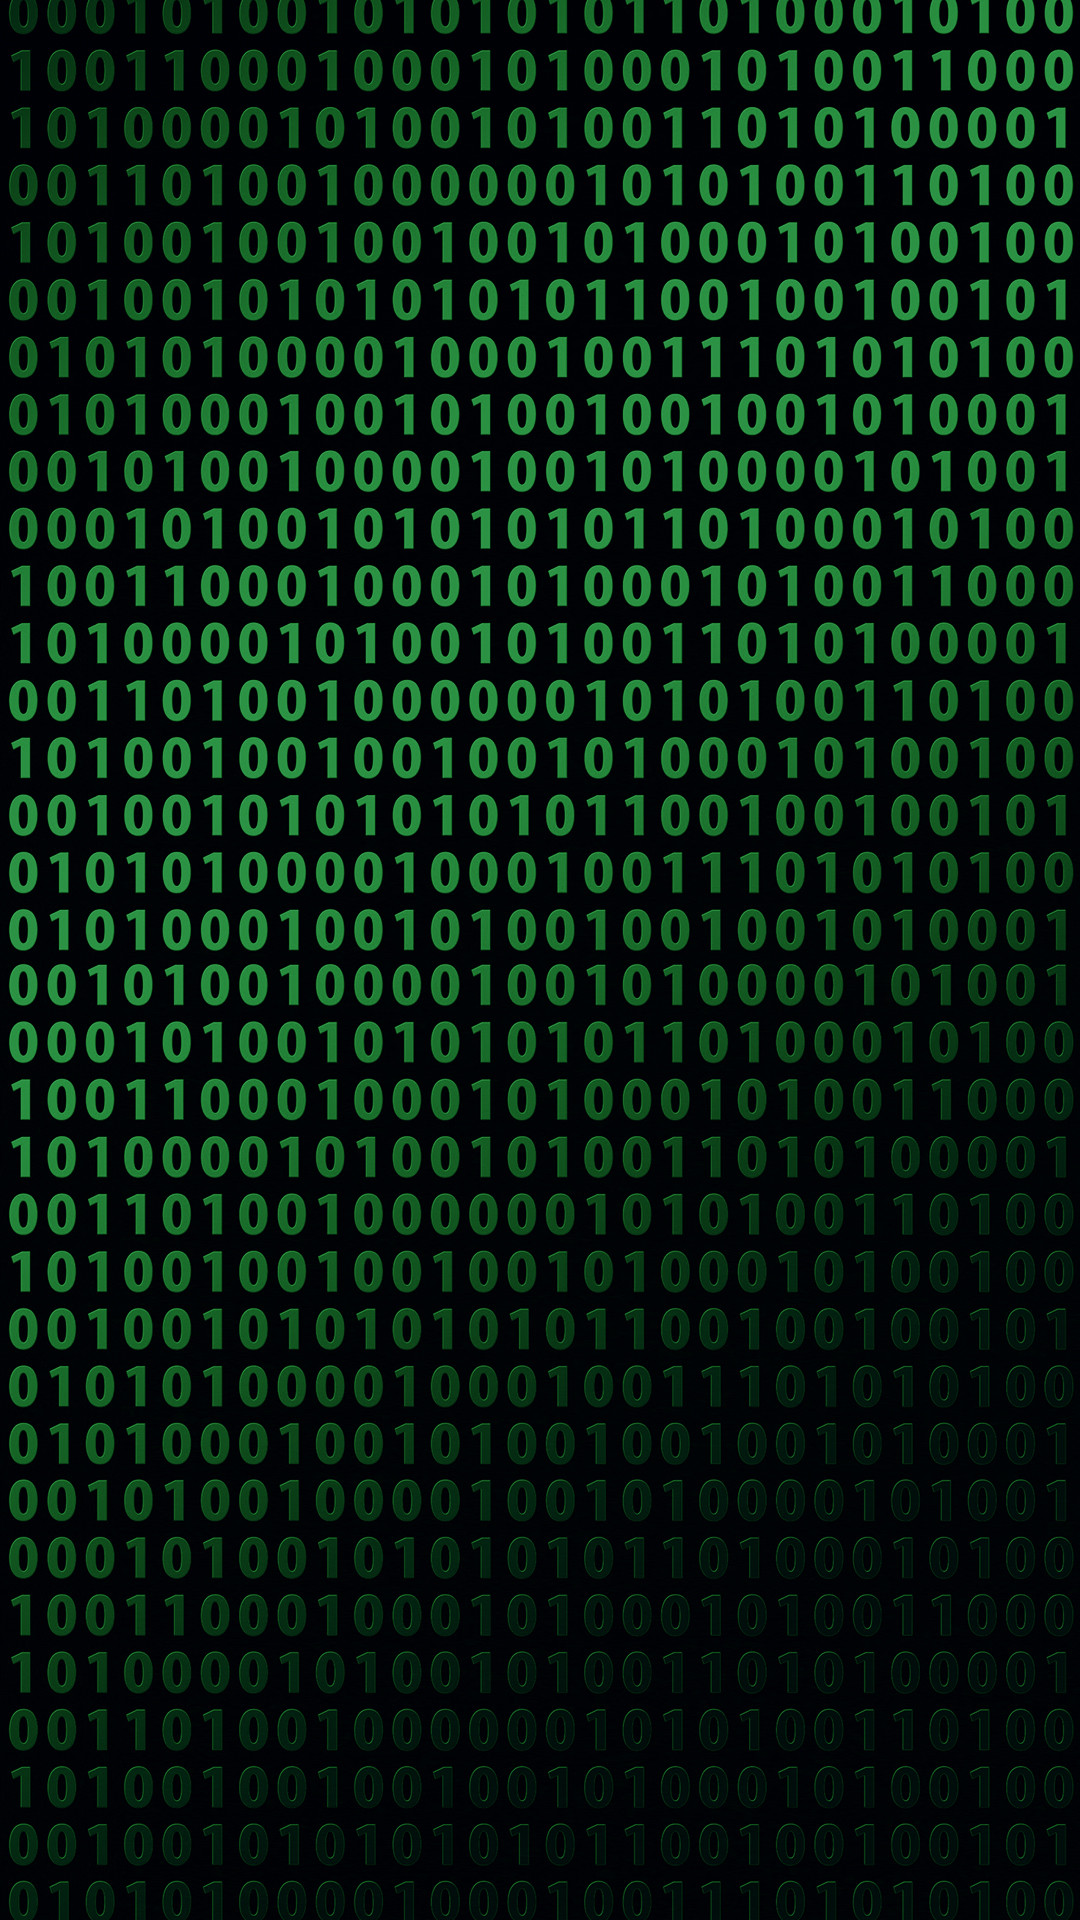 Animated Wallpaper For Mobile Phone Gif Binary Code Wallpaper 60 Images